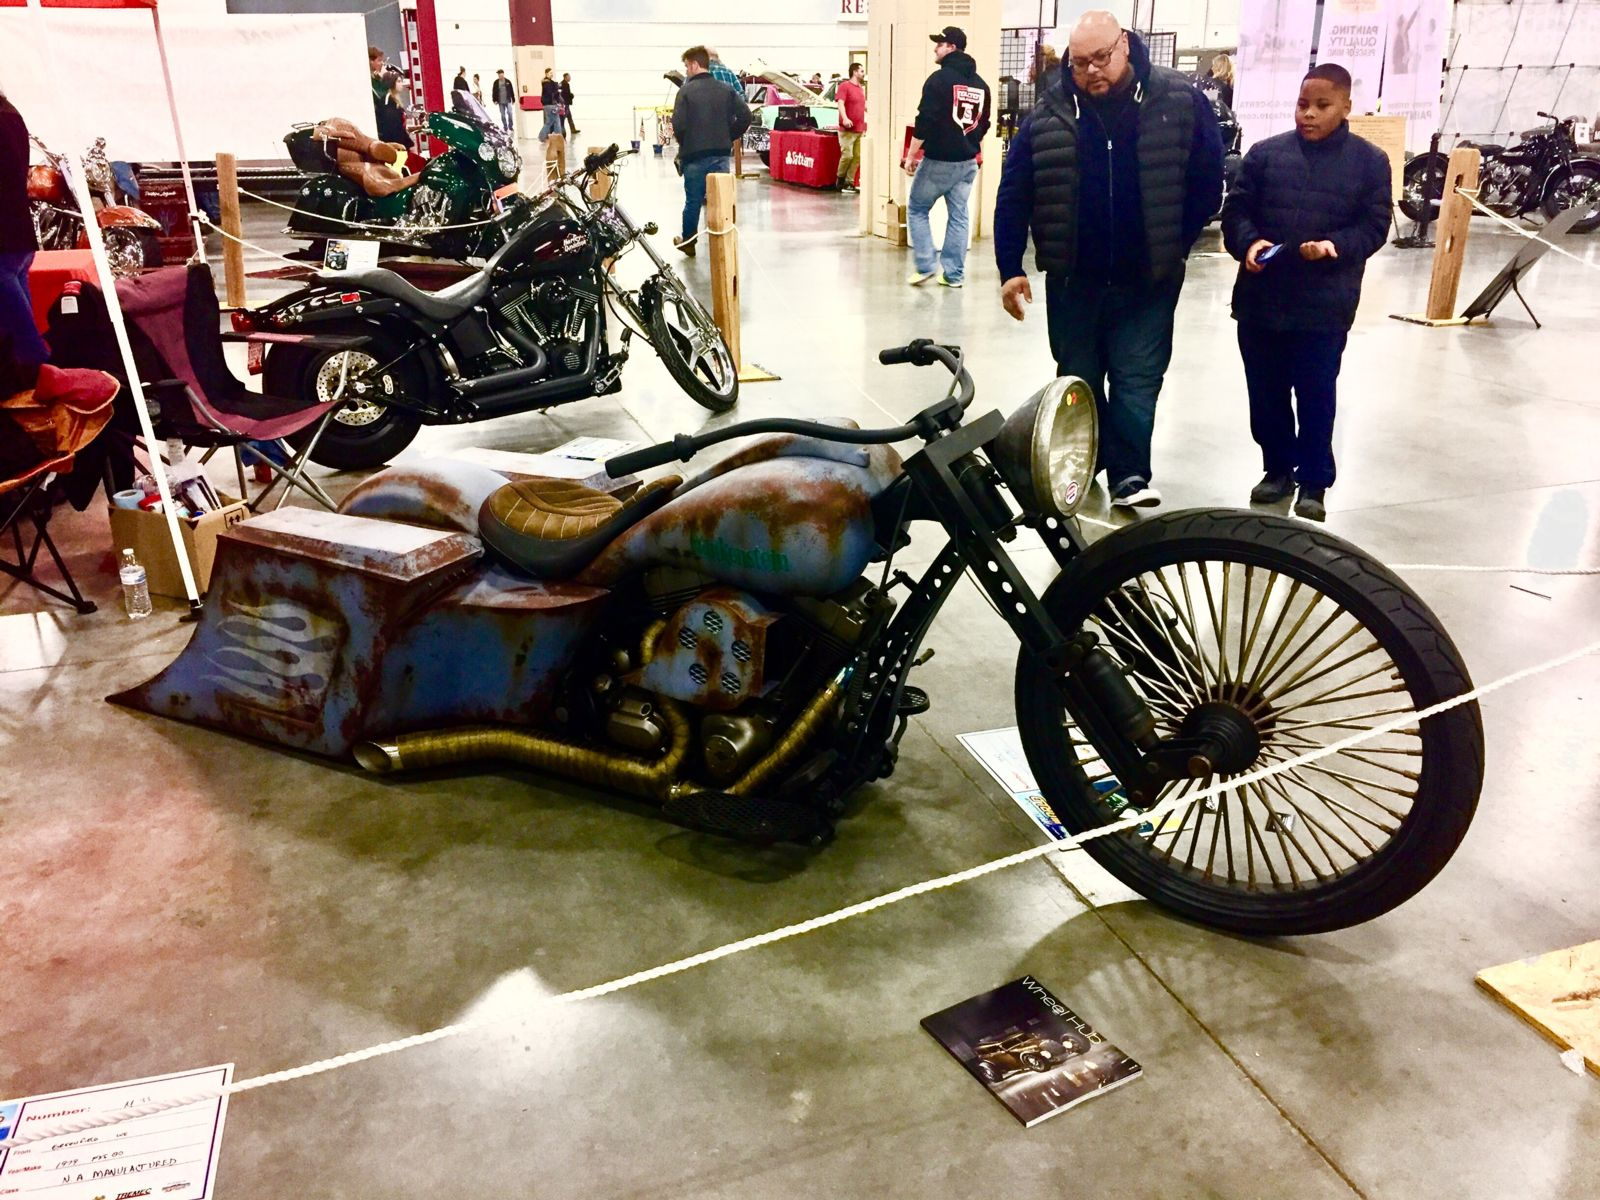 Motorcycle at World of Wheels event